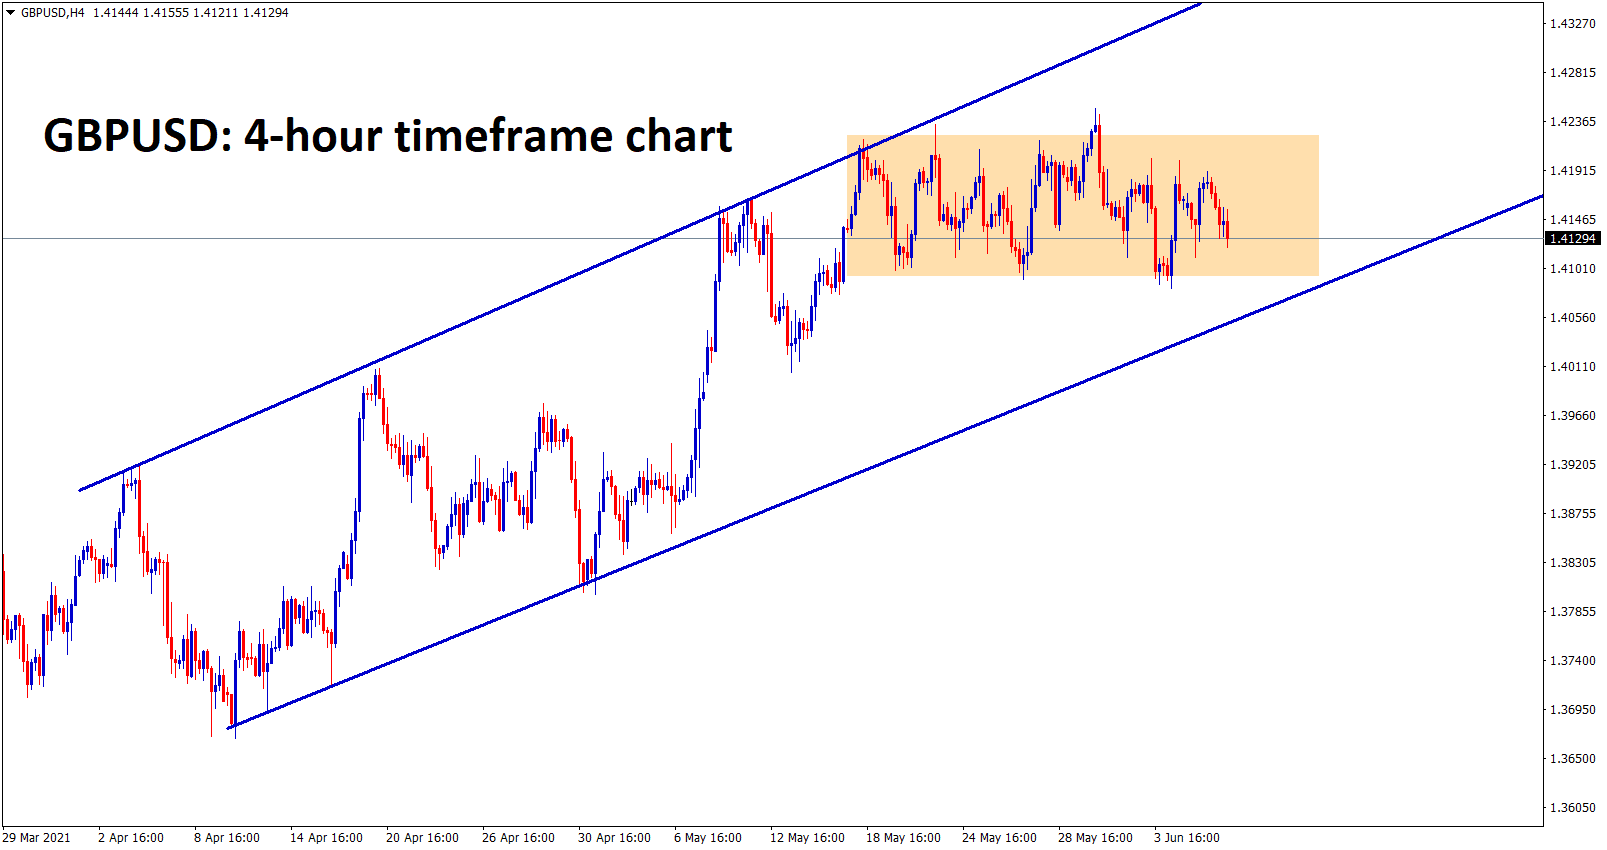 GBPUSD is consolidating at the higher high zone and major higher timeframe resistance level